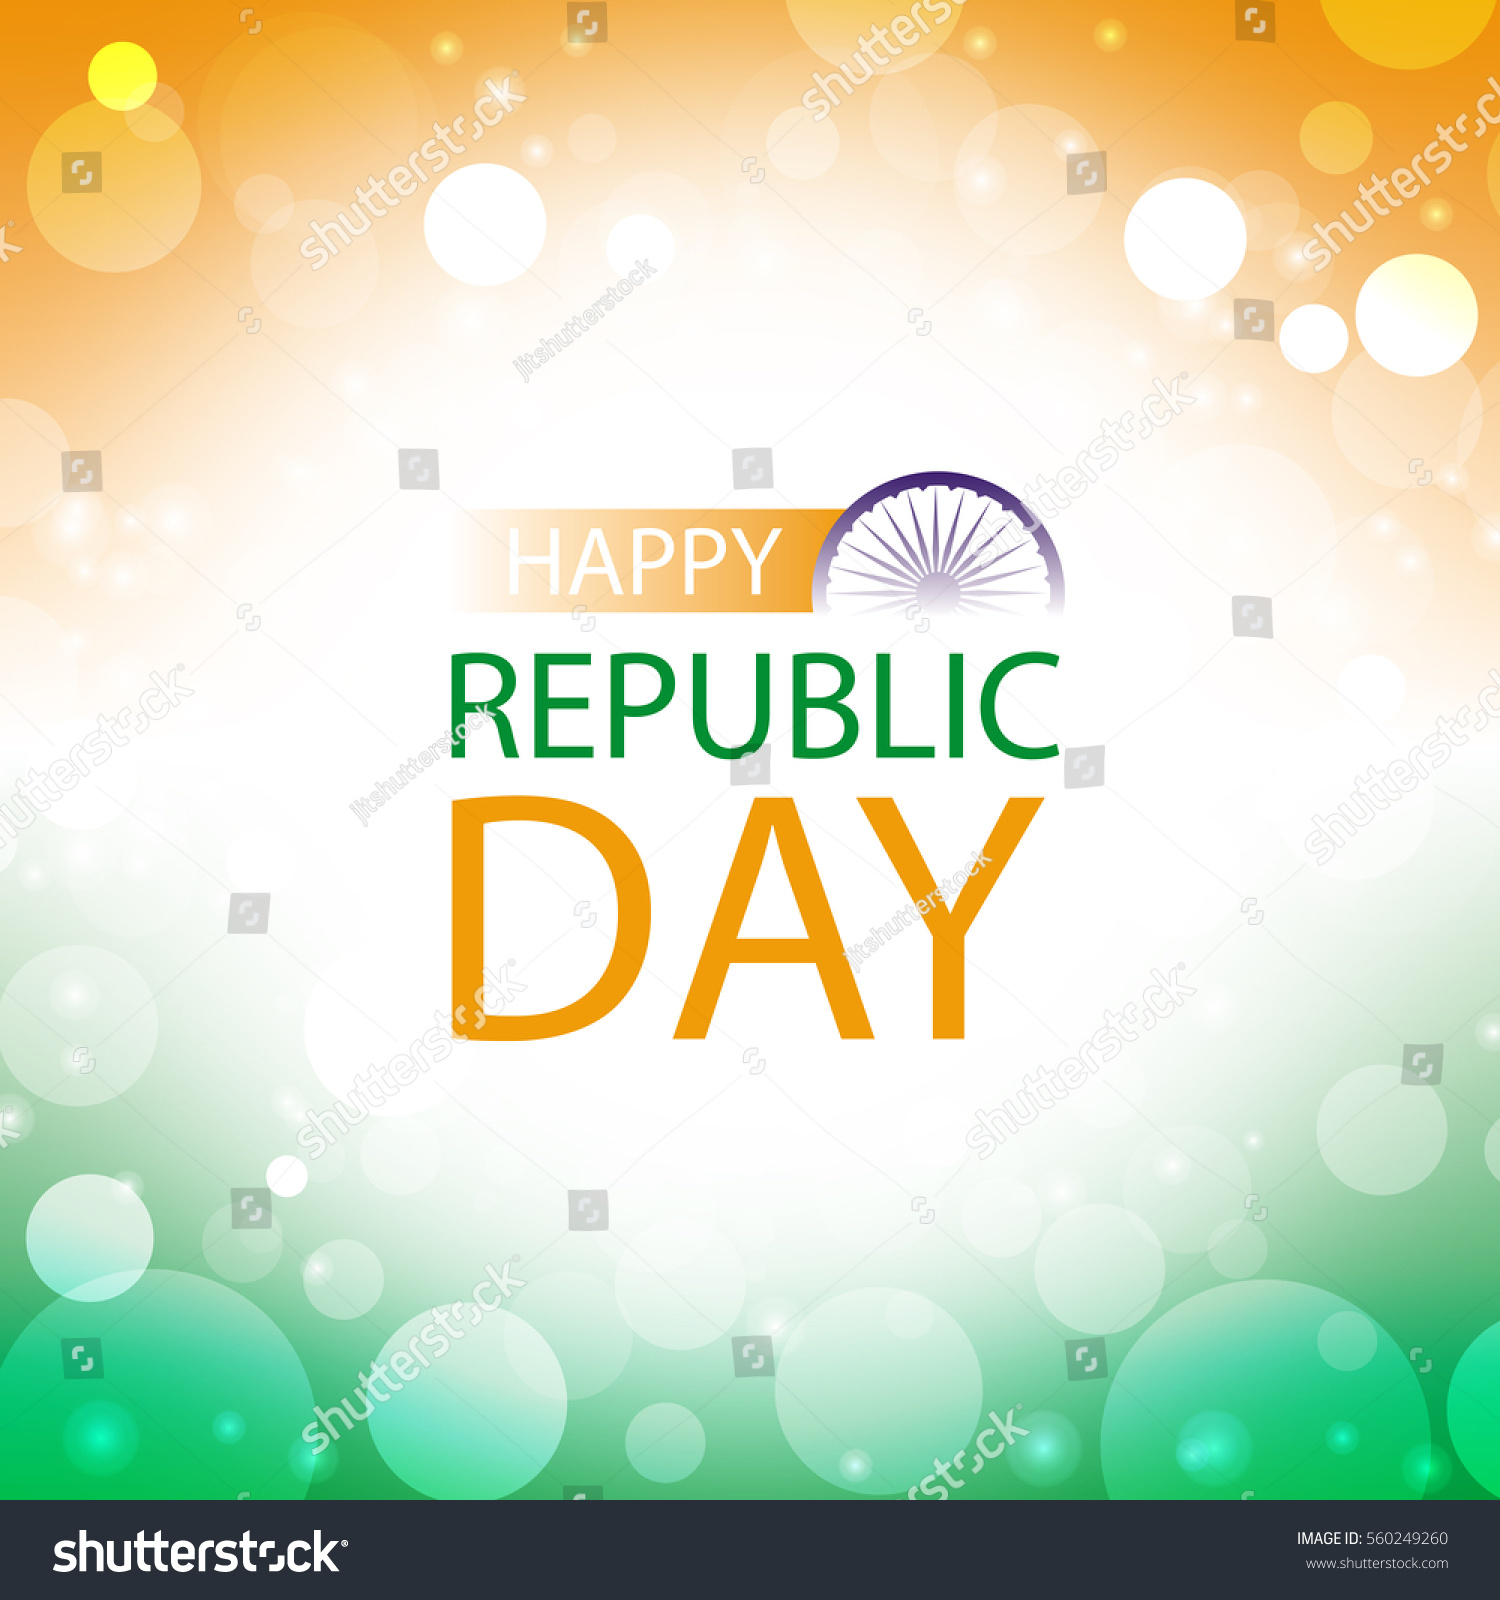 Happy republic day india greeting card stock vector 560249260 happy republic day india greeting card with abstract color of flag background m4hsunfo